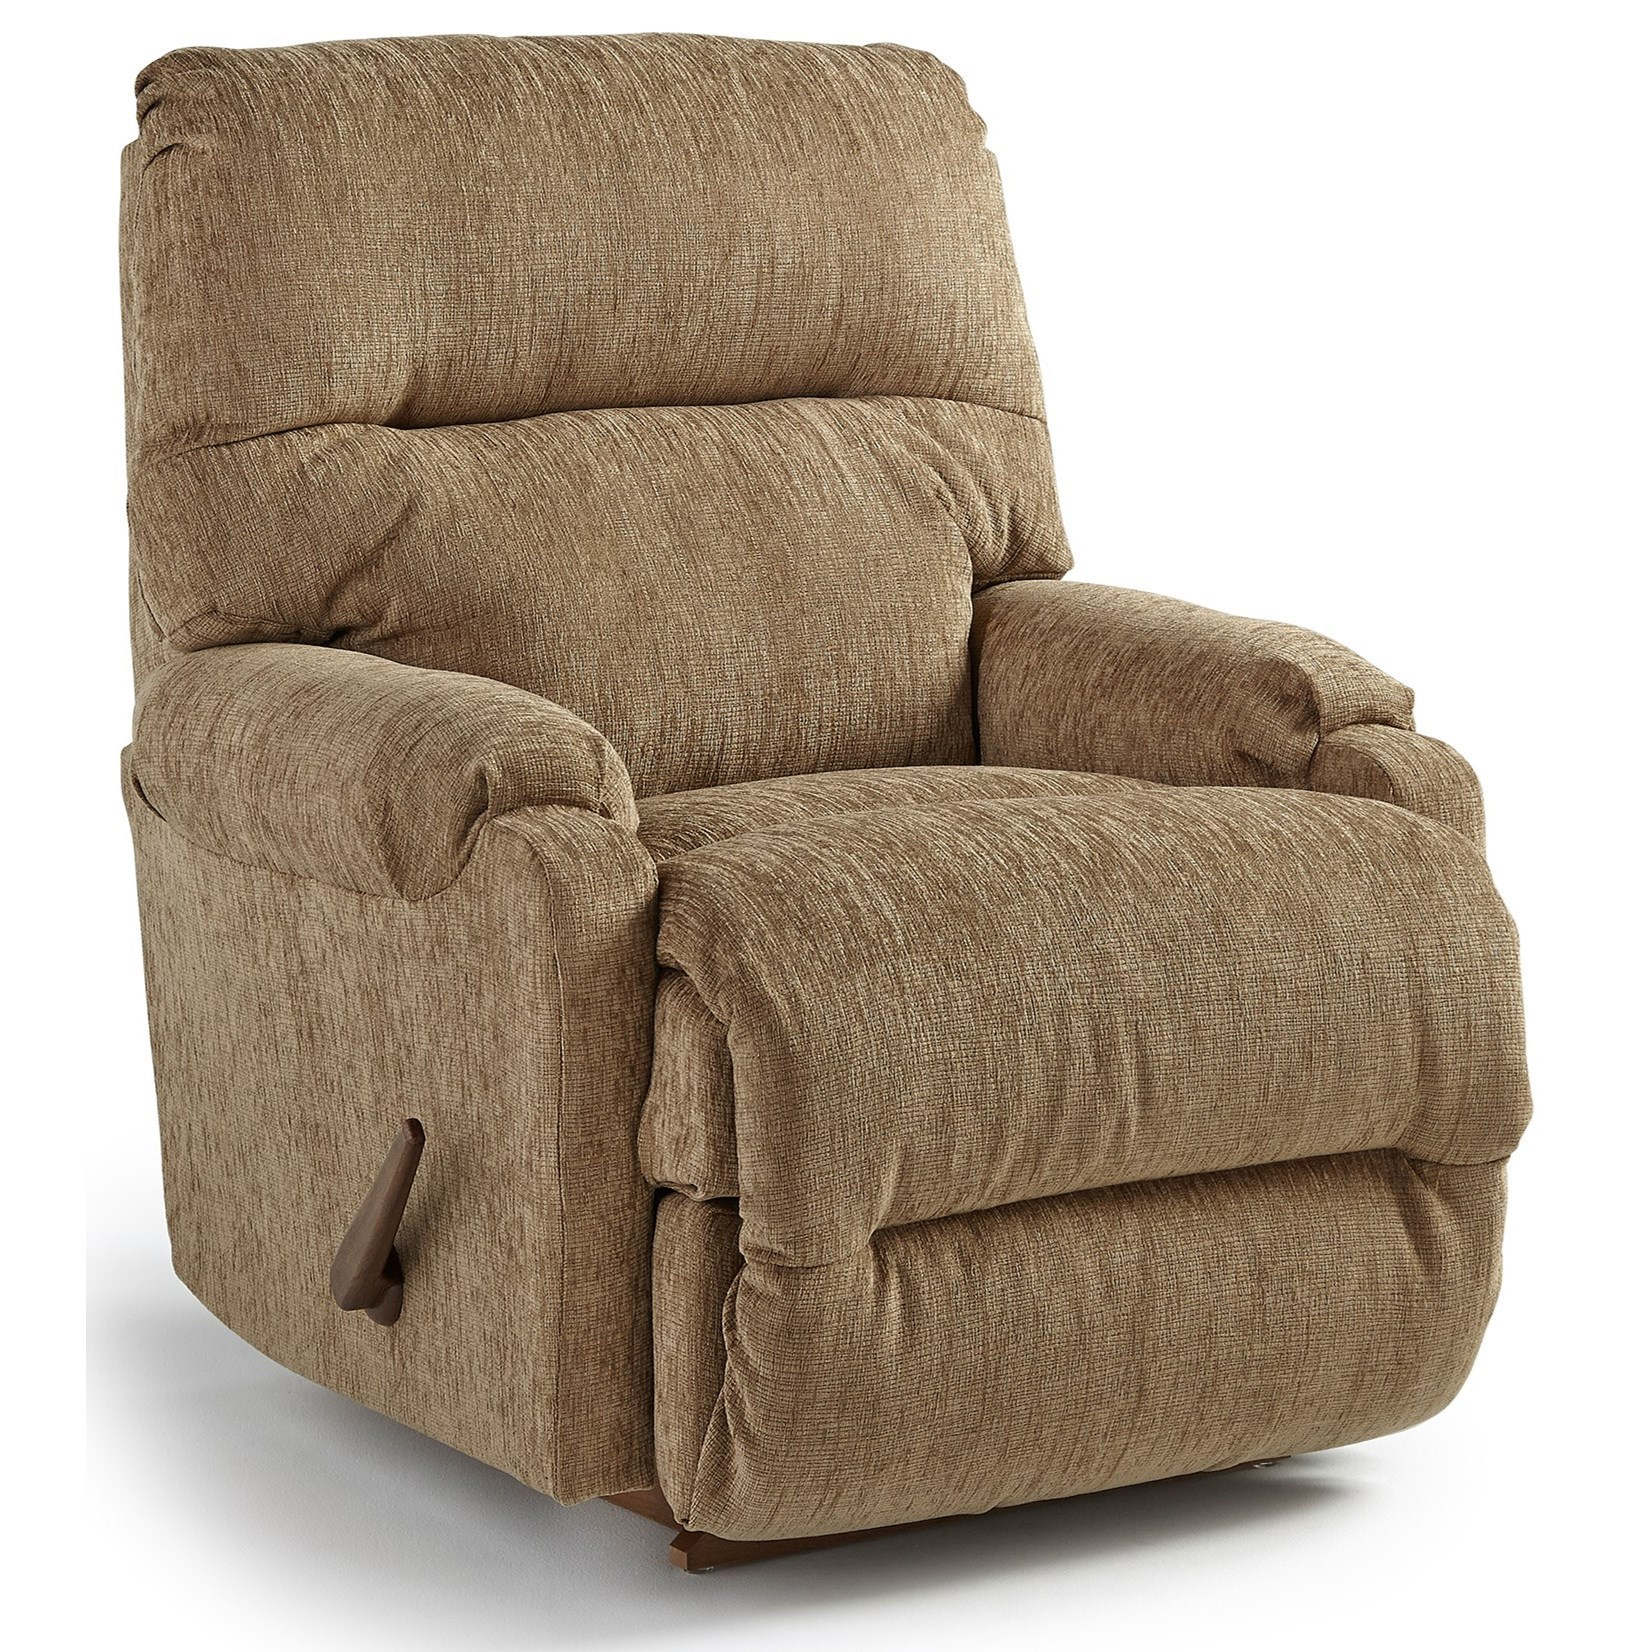 Best Home Furnishings Recliners   Petite Cannes Rocking Reclining Chair